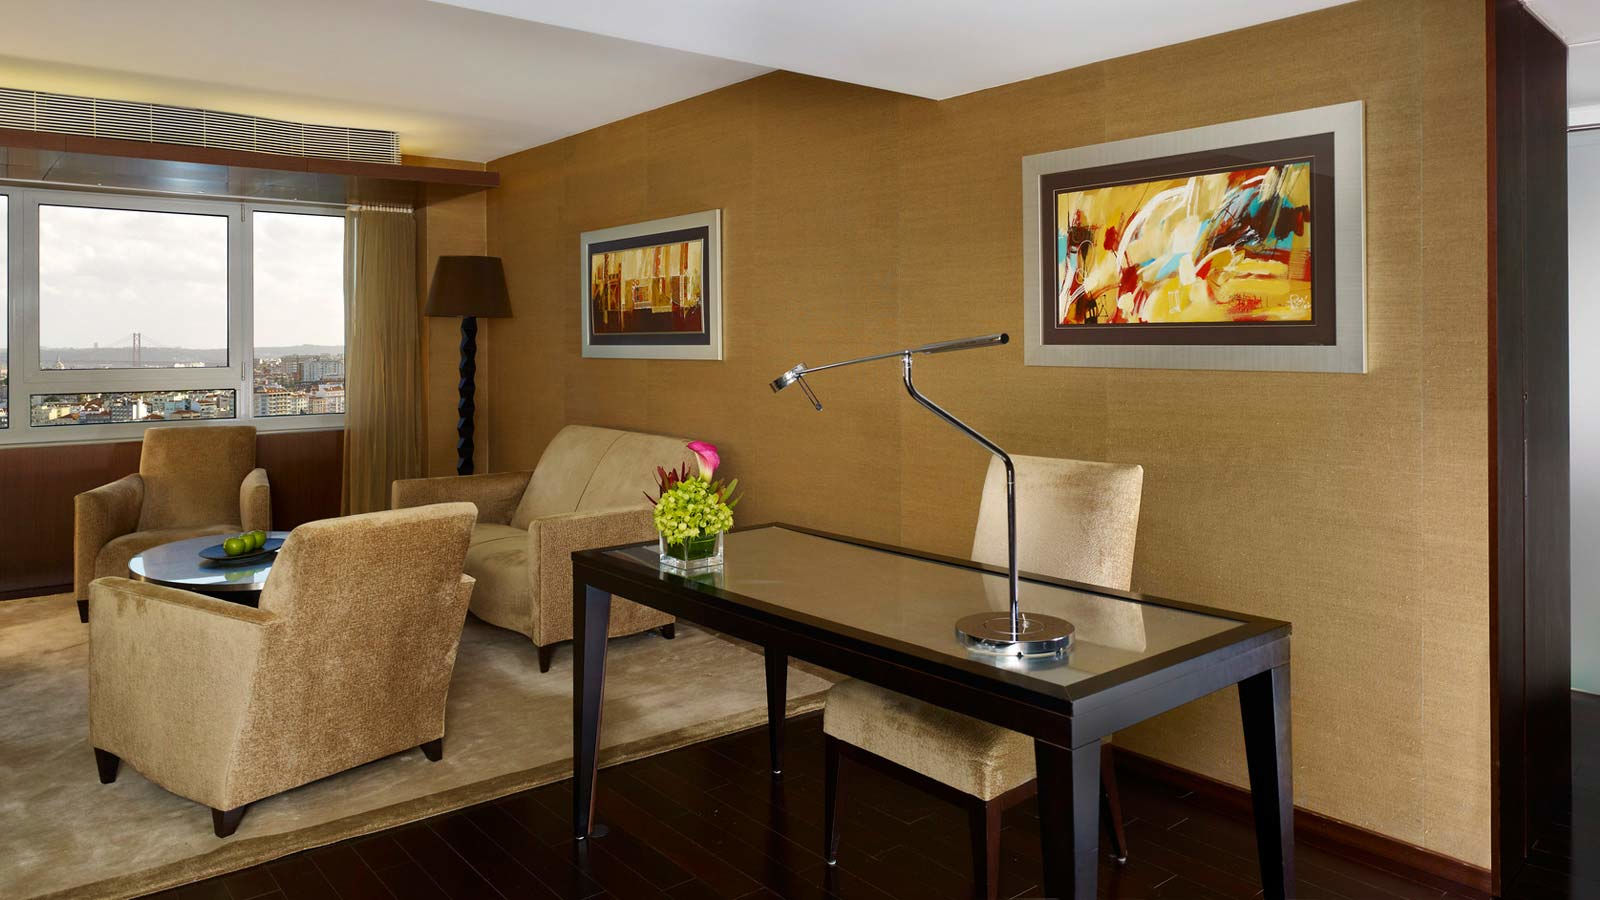 Executive Suite incl. breakfast, SPA access and more